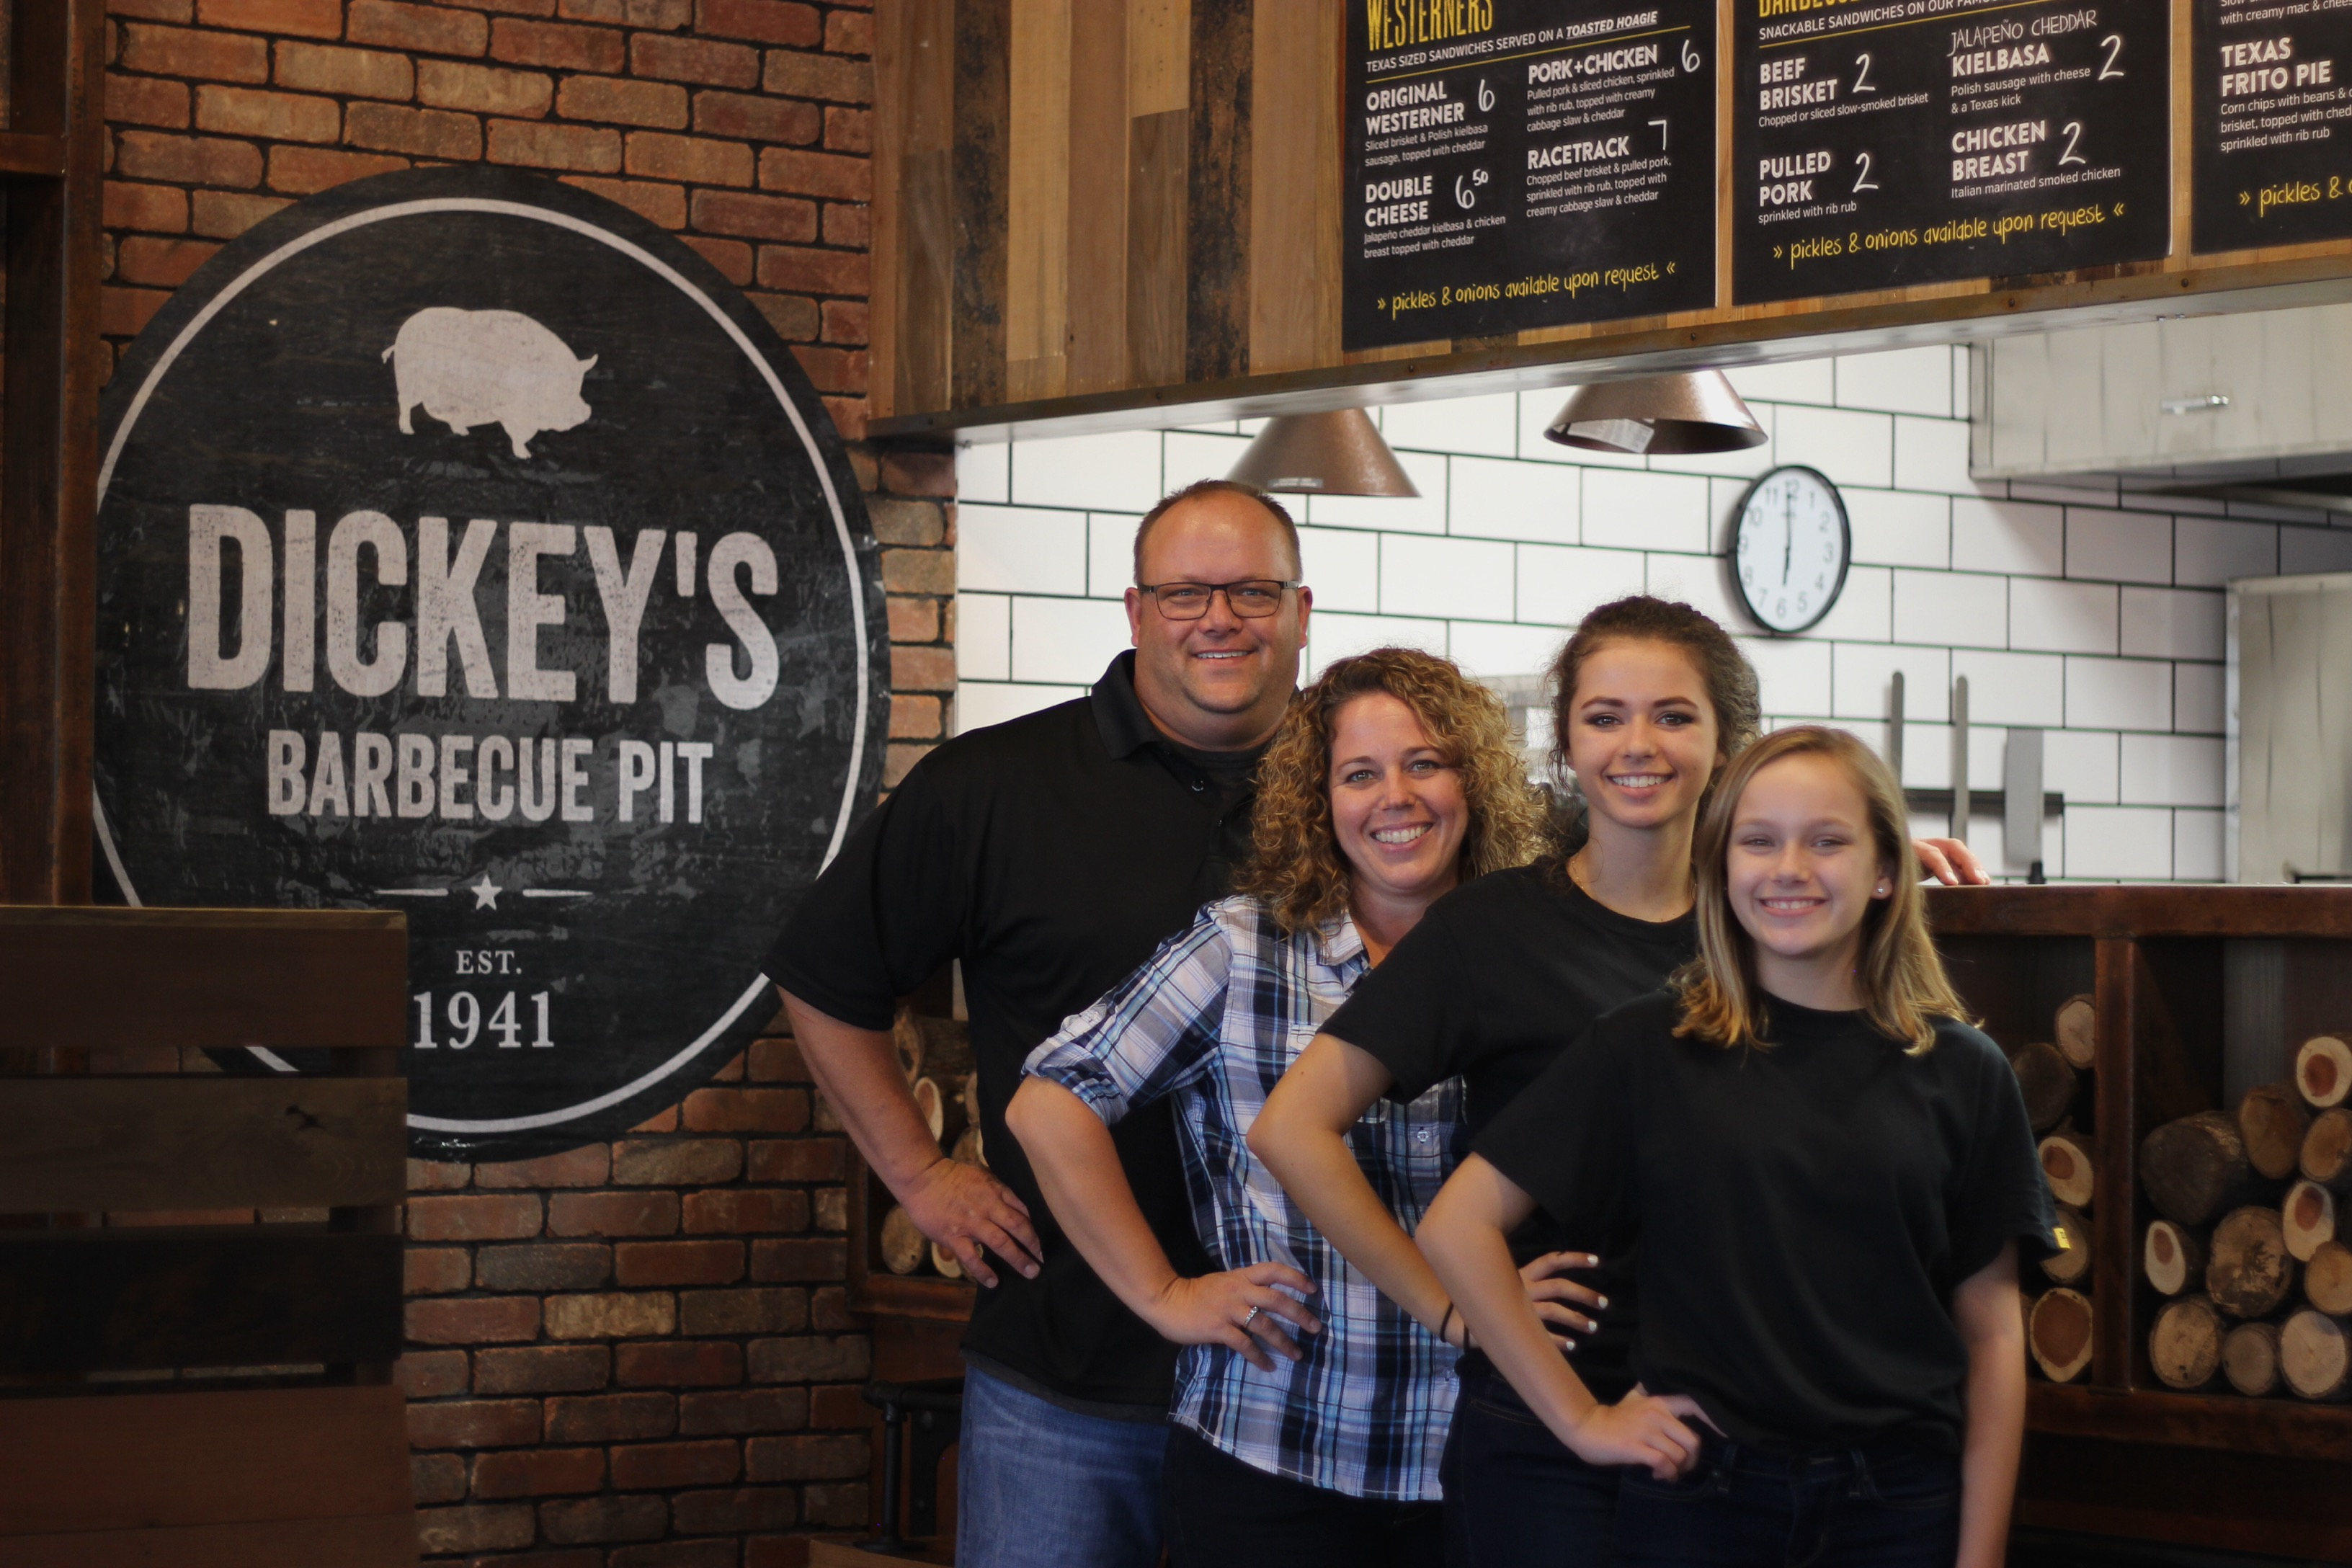 YourObserver.com: Dickey's Barbecue Pit Opens In Bradenton